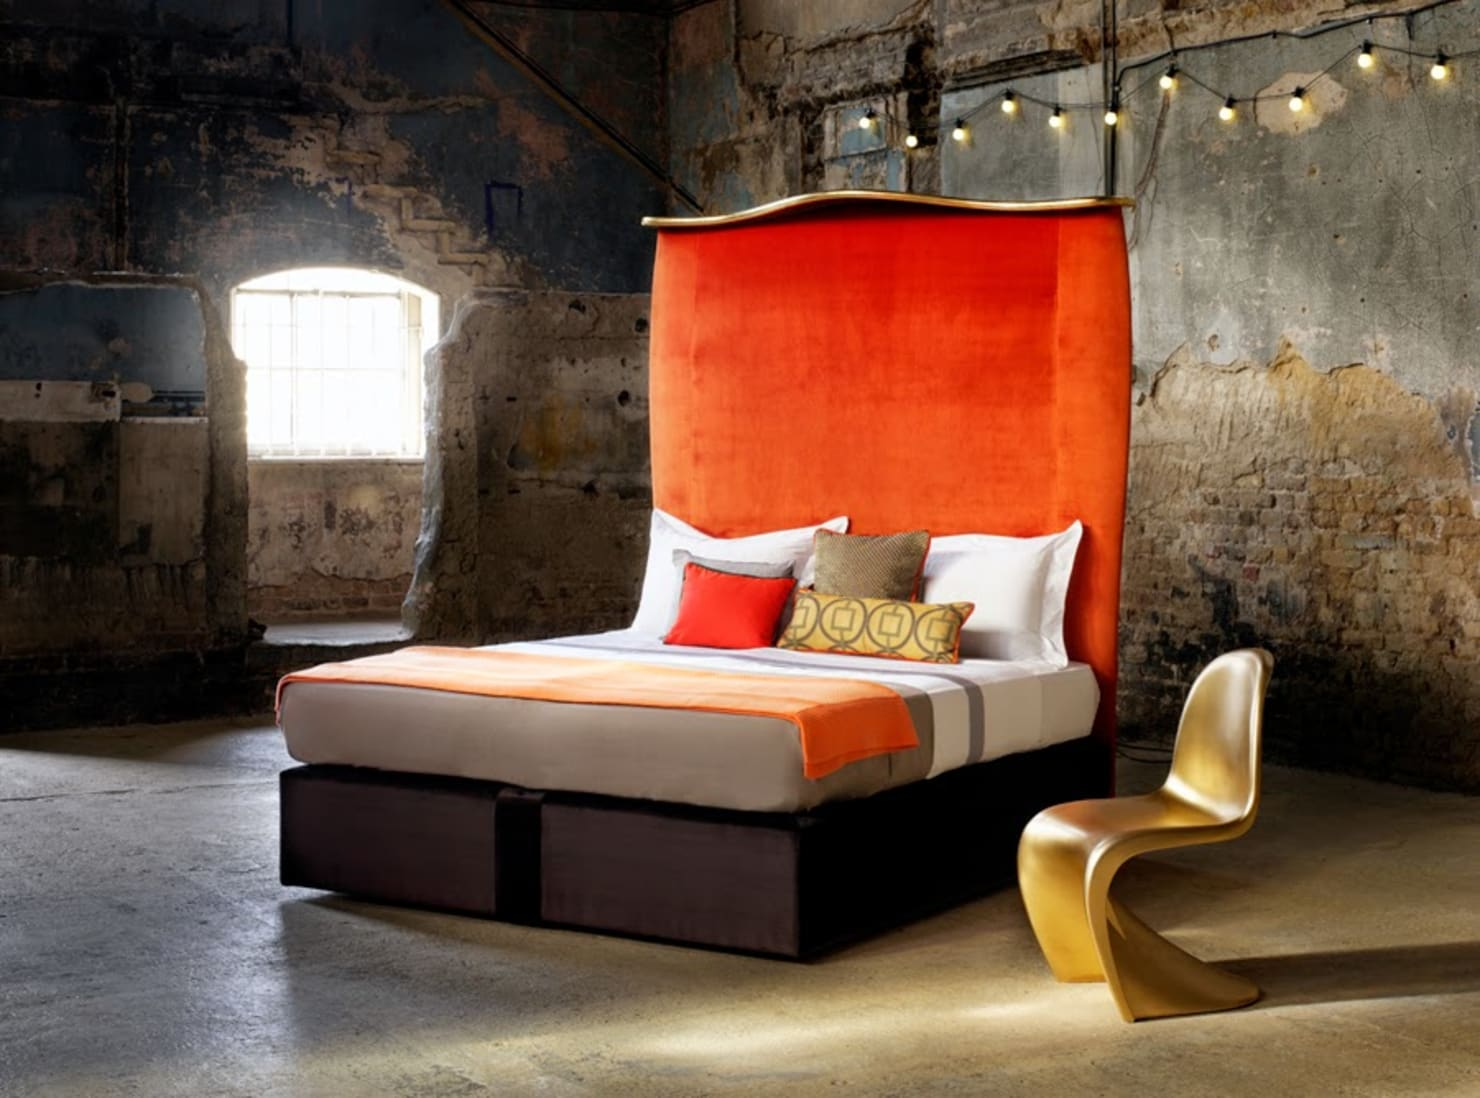 13 incredible beds that you'll want to stay awake to admire